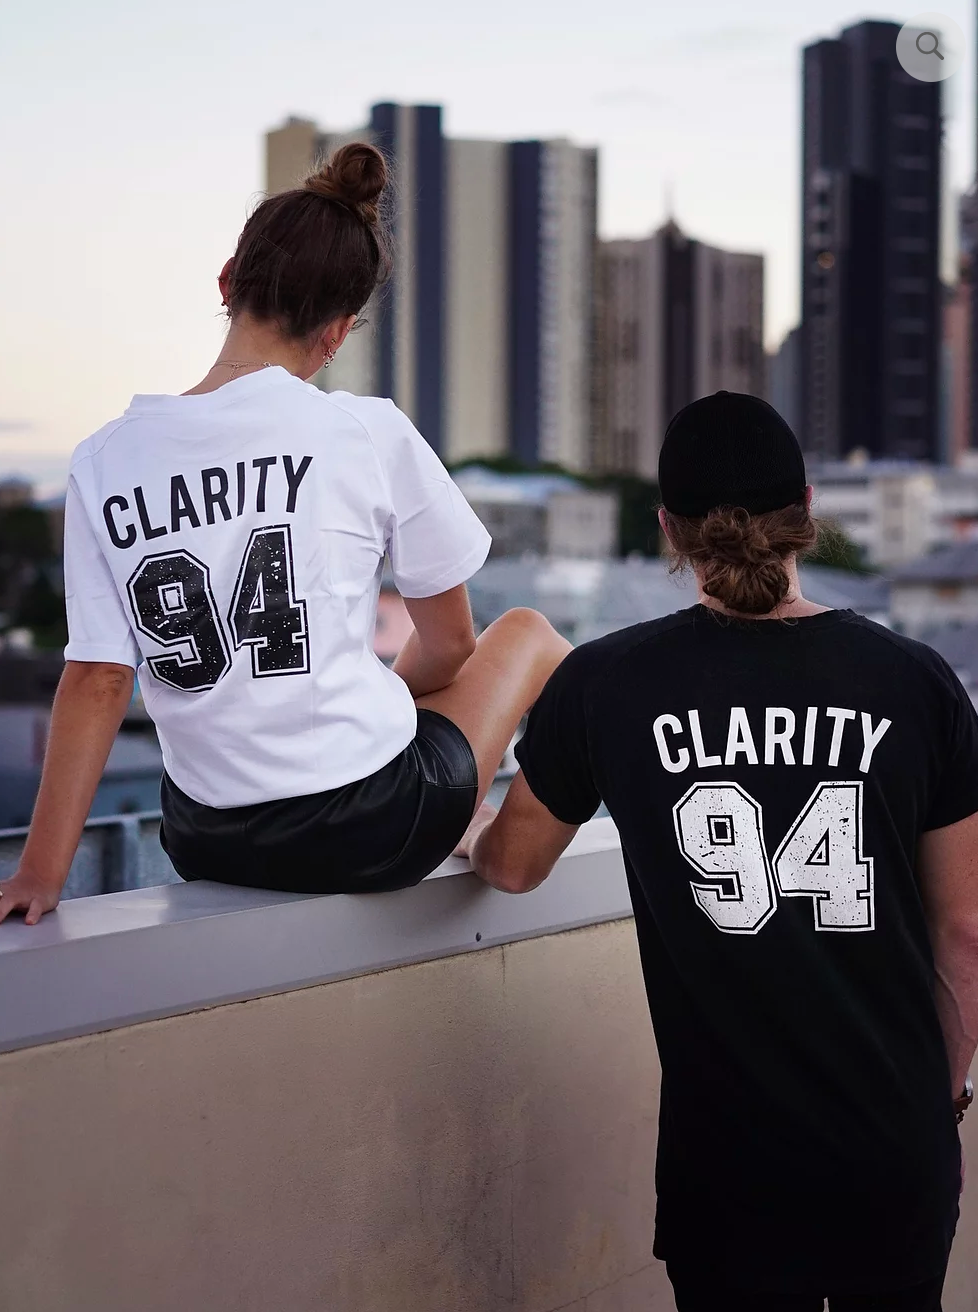 Clarity 94 Jersey (7 LEFT)